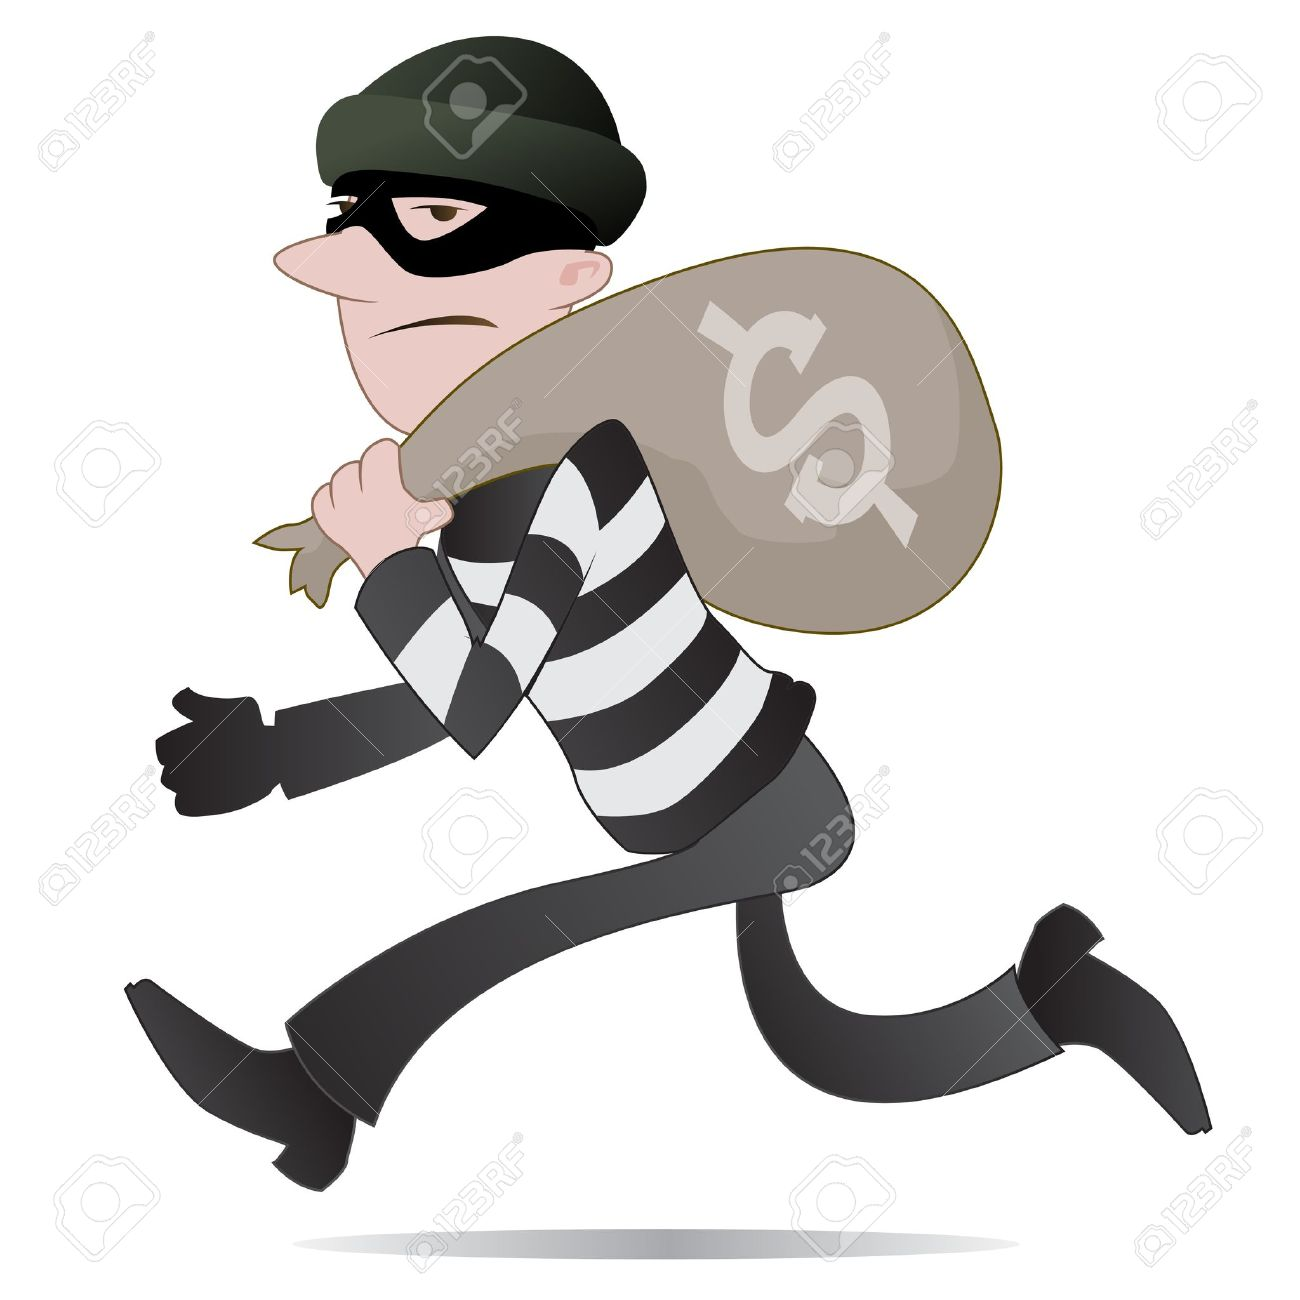 556 Thief free clipart.